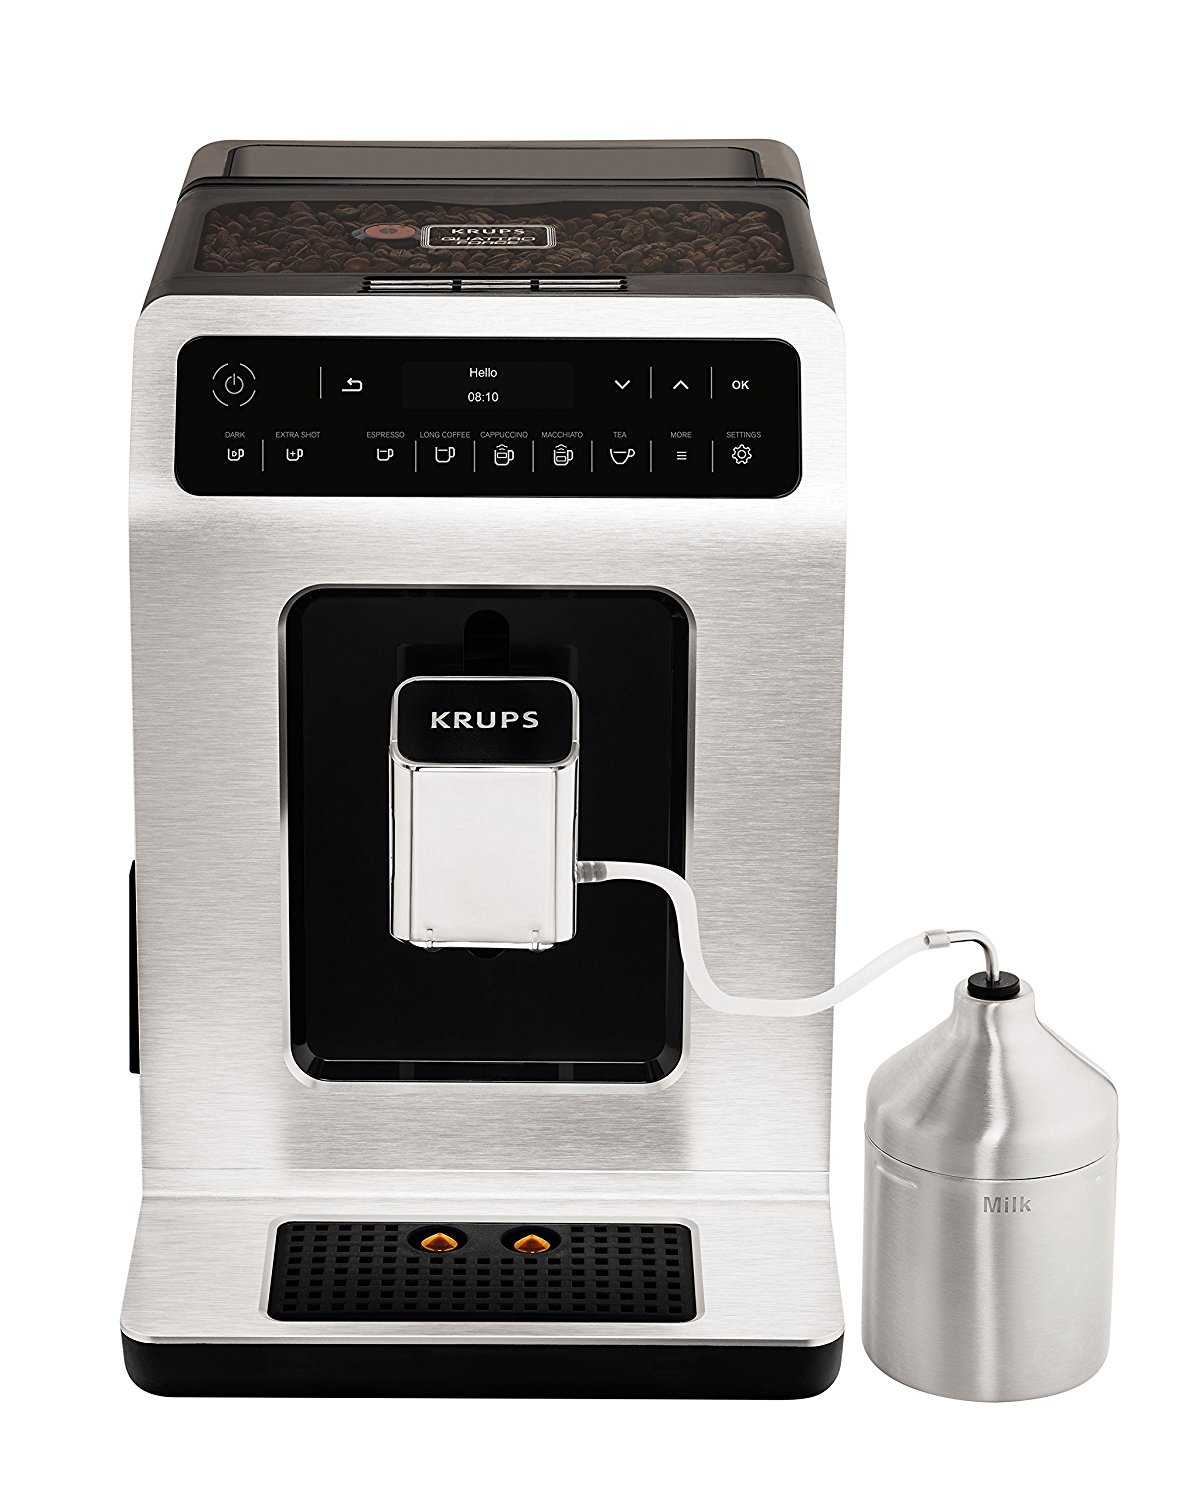 krups kaffeevollautomat ea891d evidence one touch cappuccino oled bedienfeld mit touchcreen 2 3 l metall bei amazon